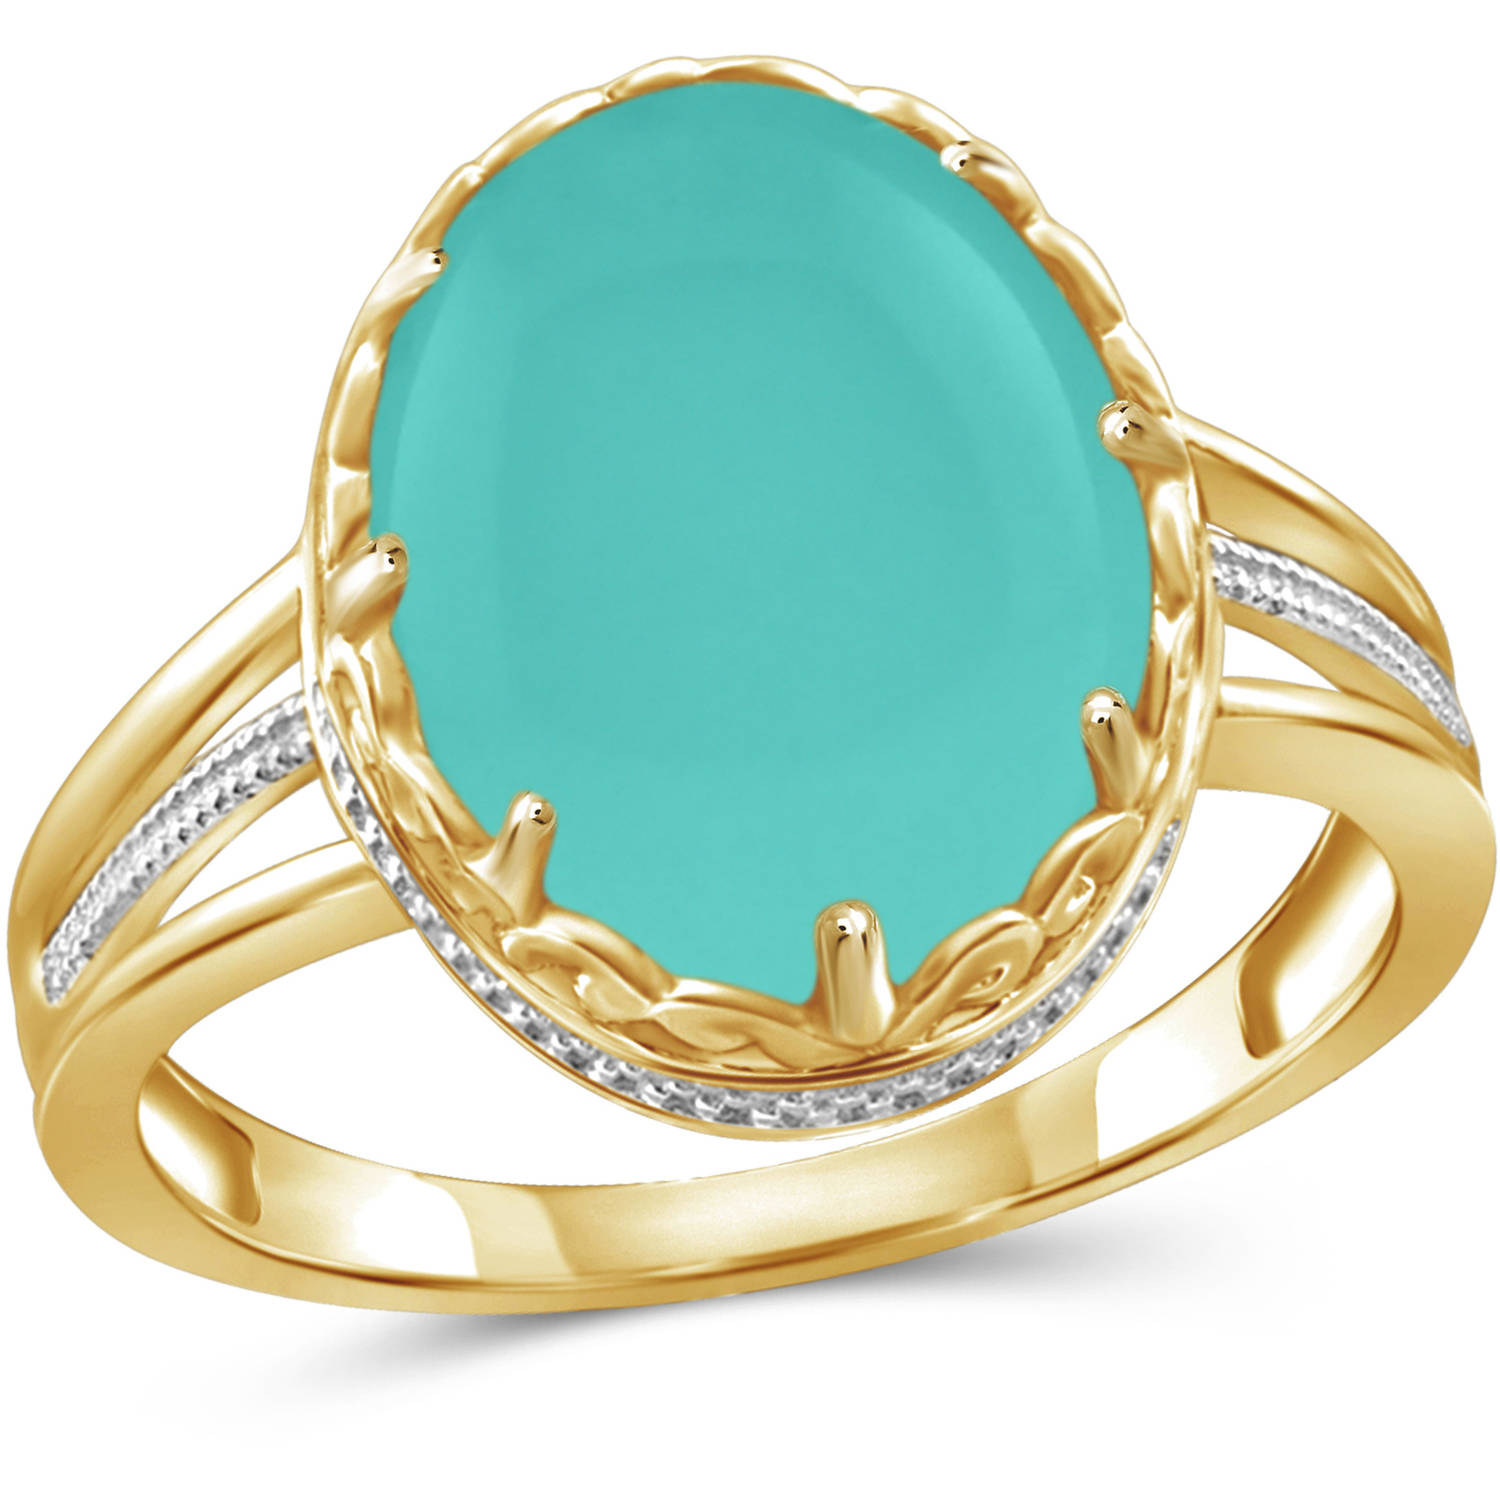 JewelersClub 6-3 4 Carat T.G.W. Chalcedony 14kt Gold over Silver Fashion Ring by JewelersClub